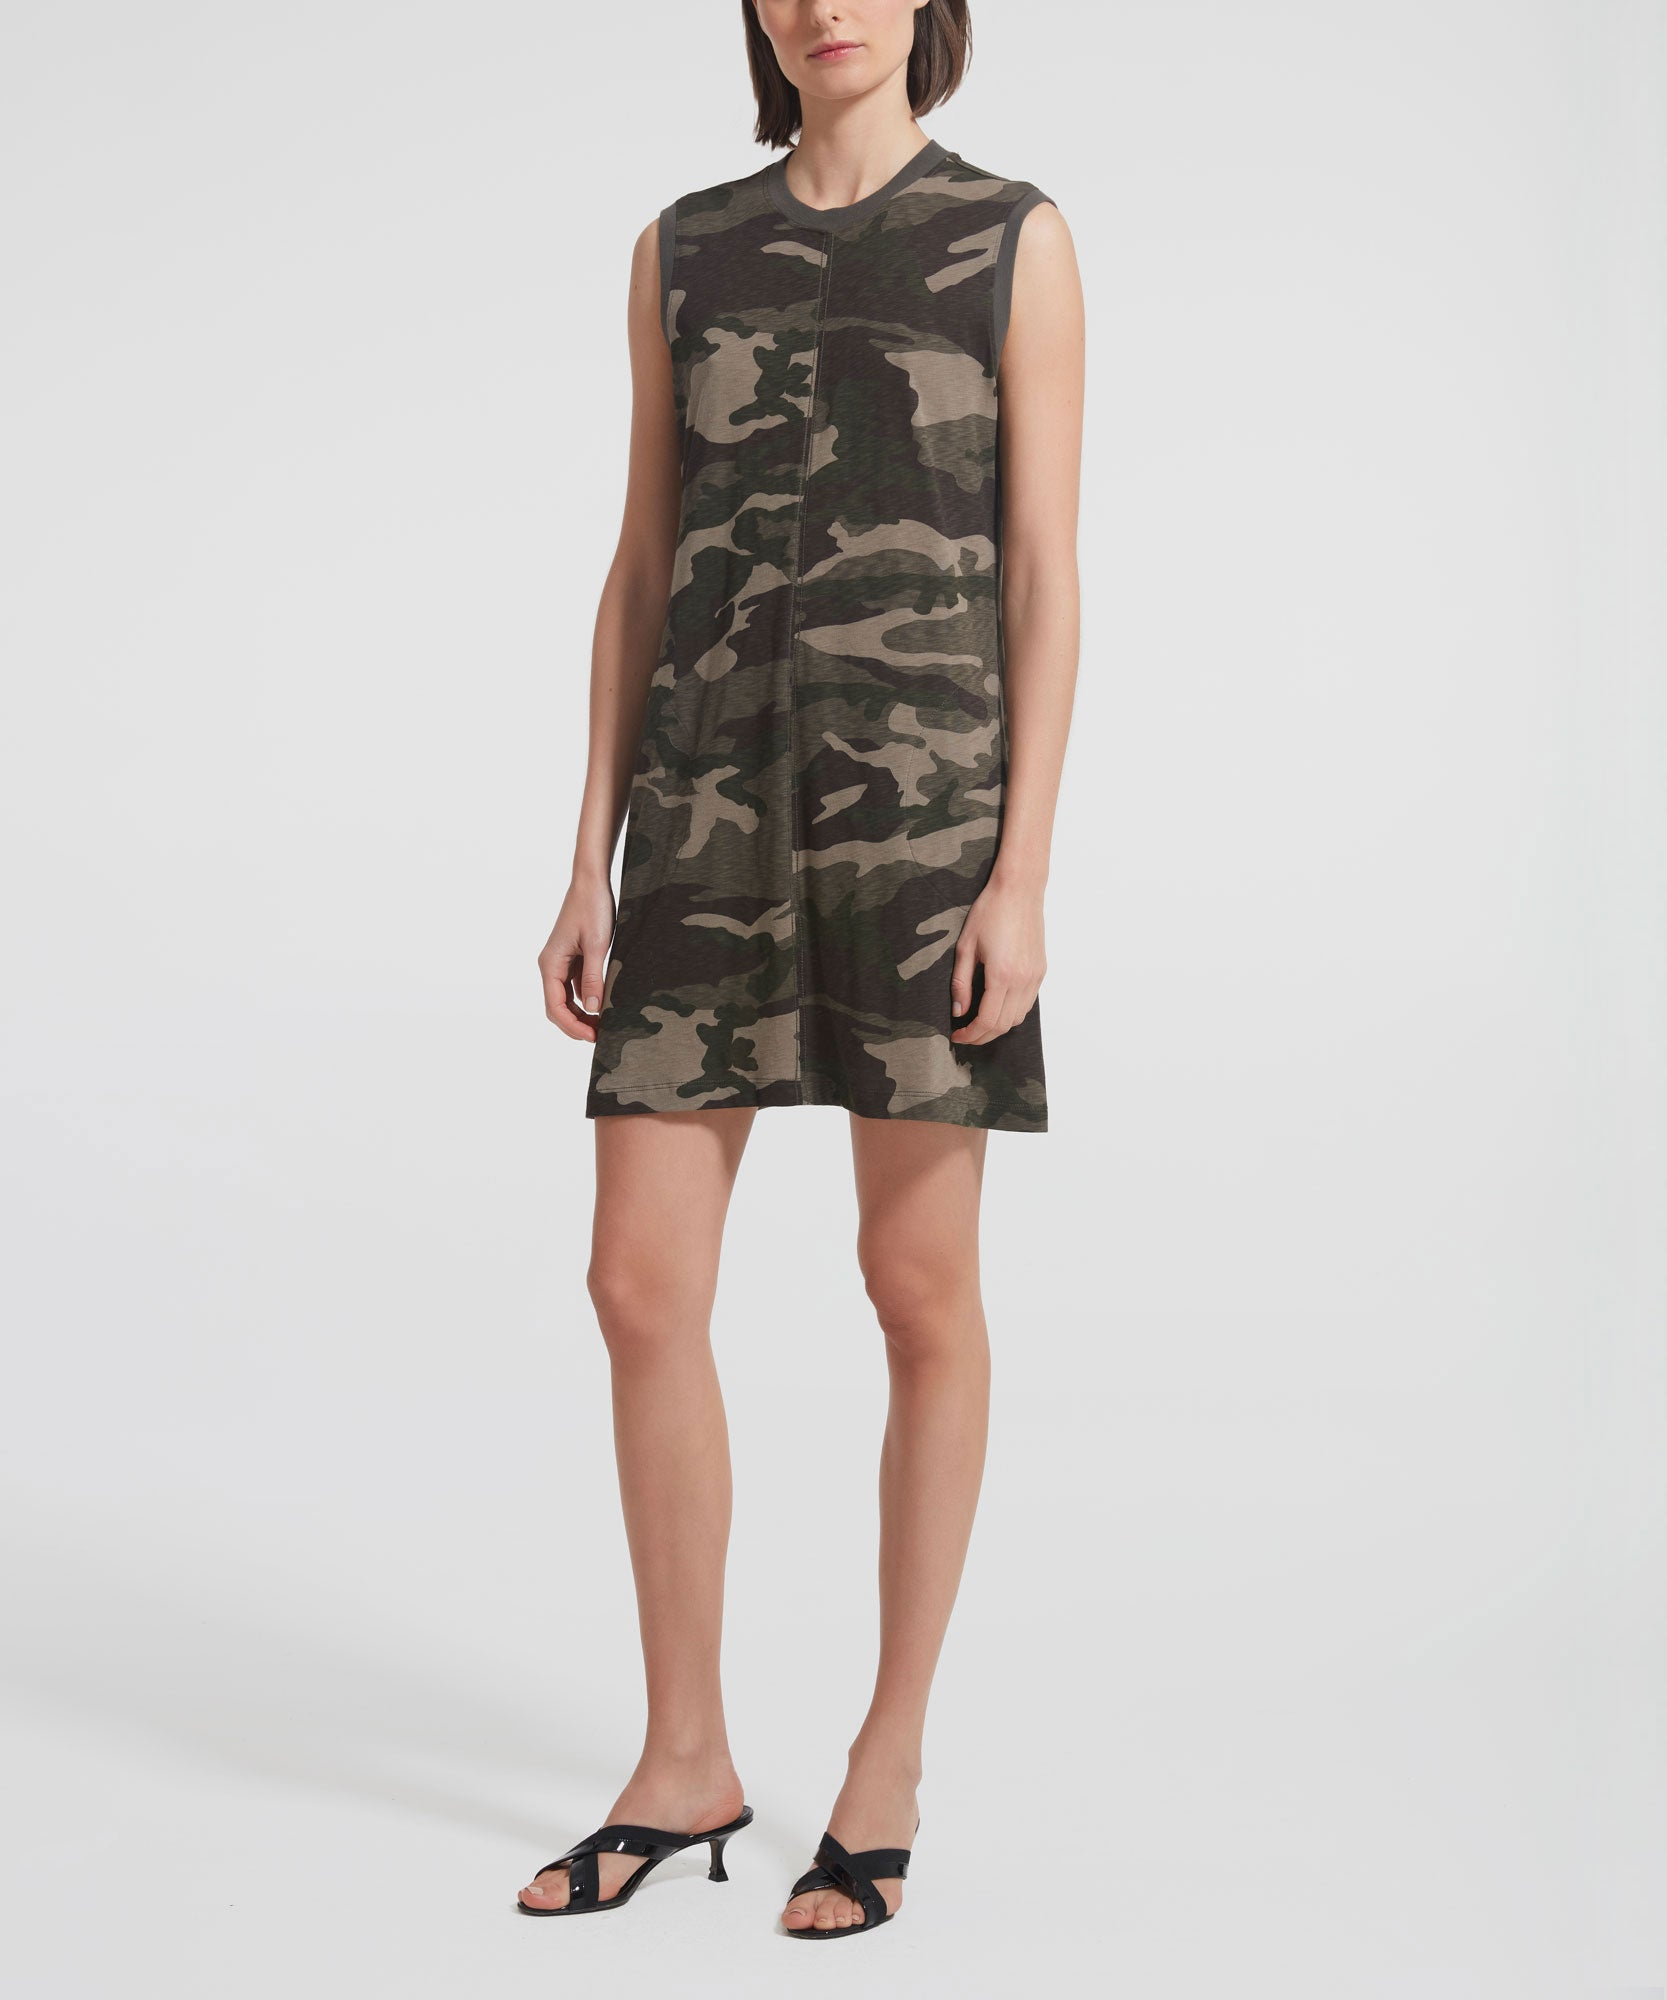 Jungle Camo Slub Jersey Tank Dress - Women's Casual Dress by ATM Anthony Thomas Melillo